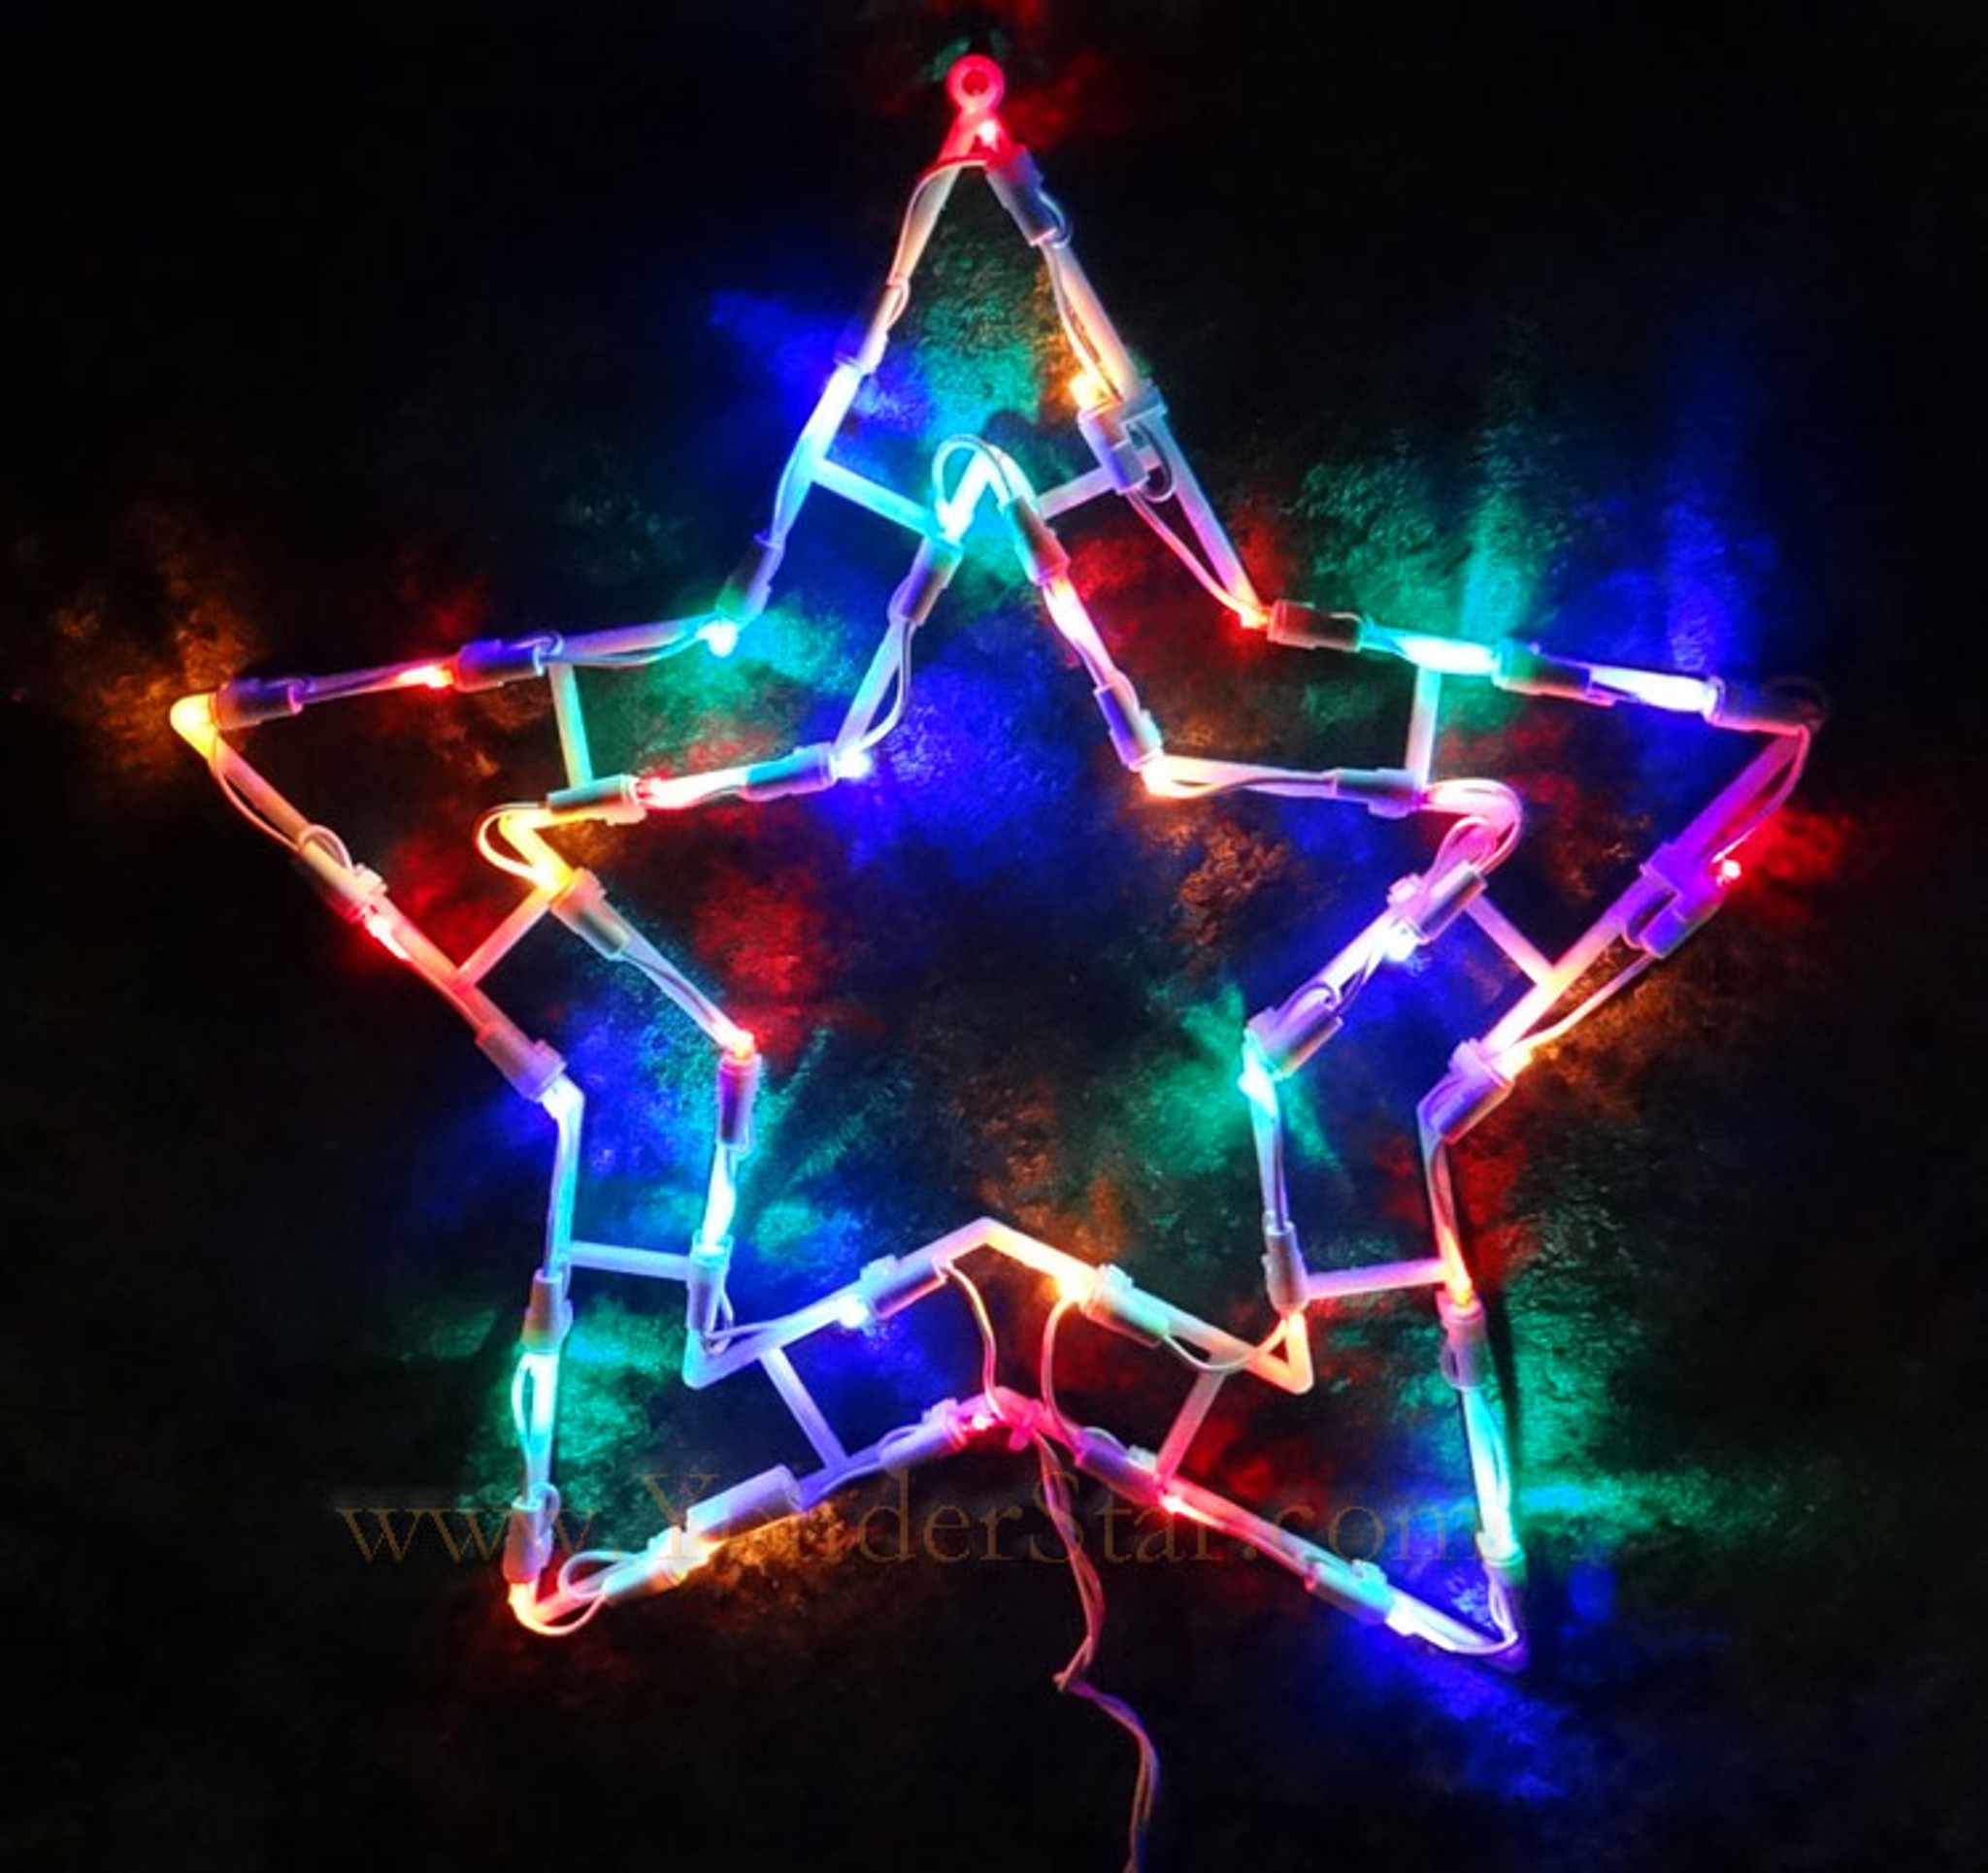 15 outdoor lighted star multi colored led lights yonder star 15 outdoor lighted star multi colored led lights aloadofball Gallery